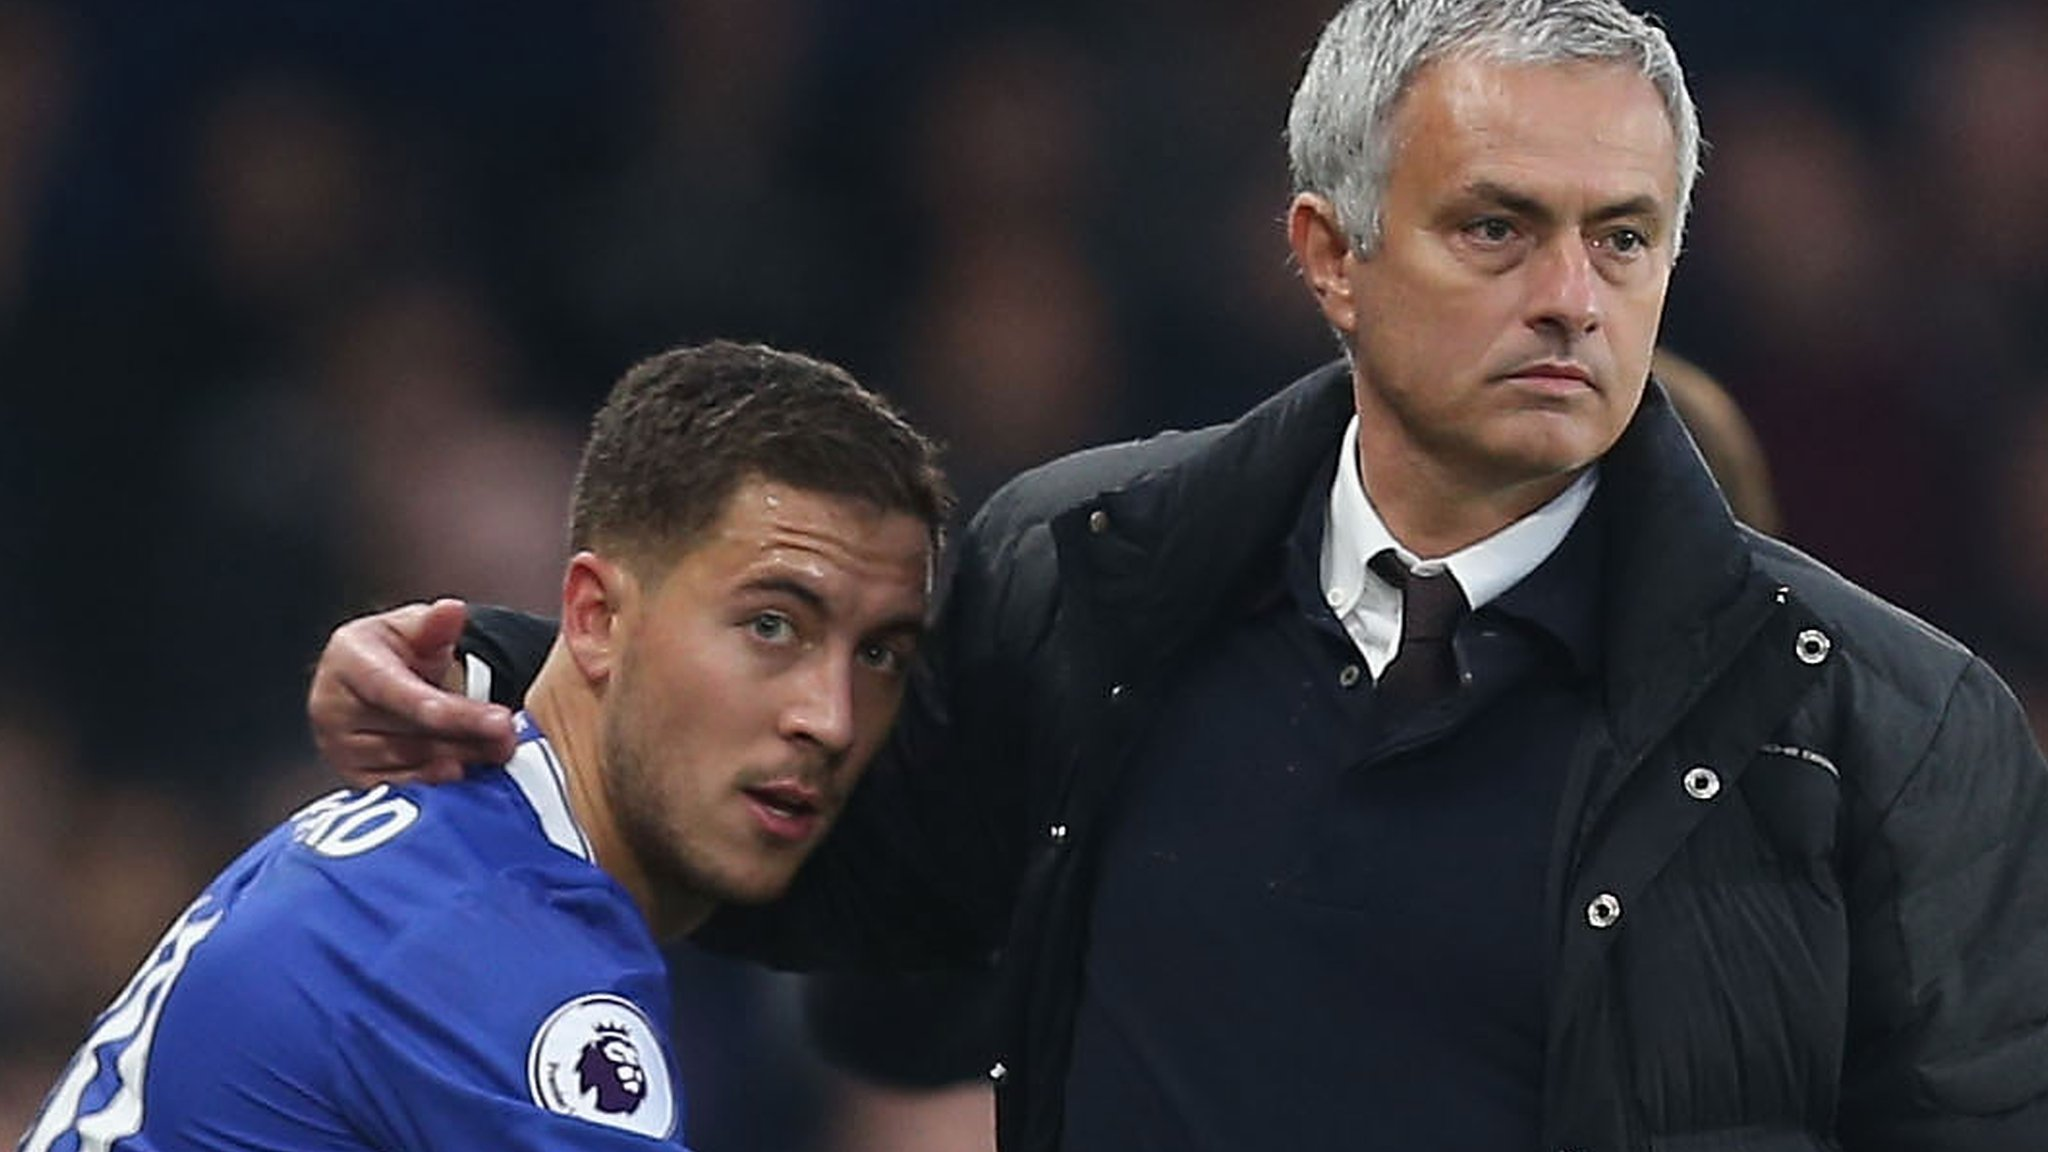 Jose Mourinho: Manchester United boss says he would love to sign Eden Hazard